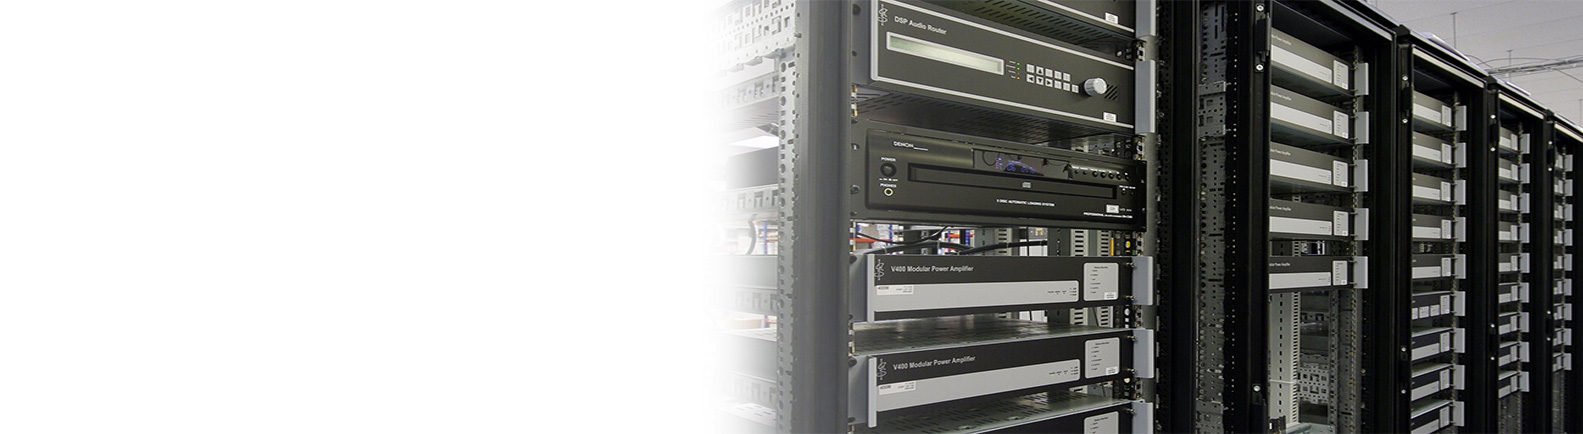 AV EQUIPMENT RACKS